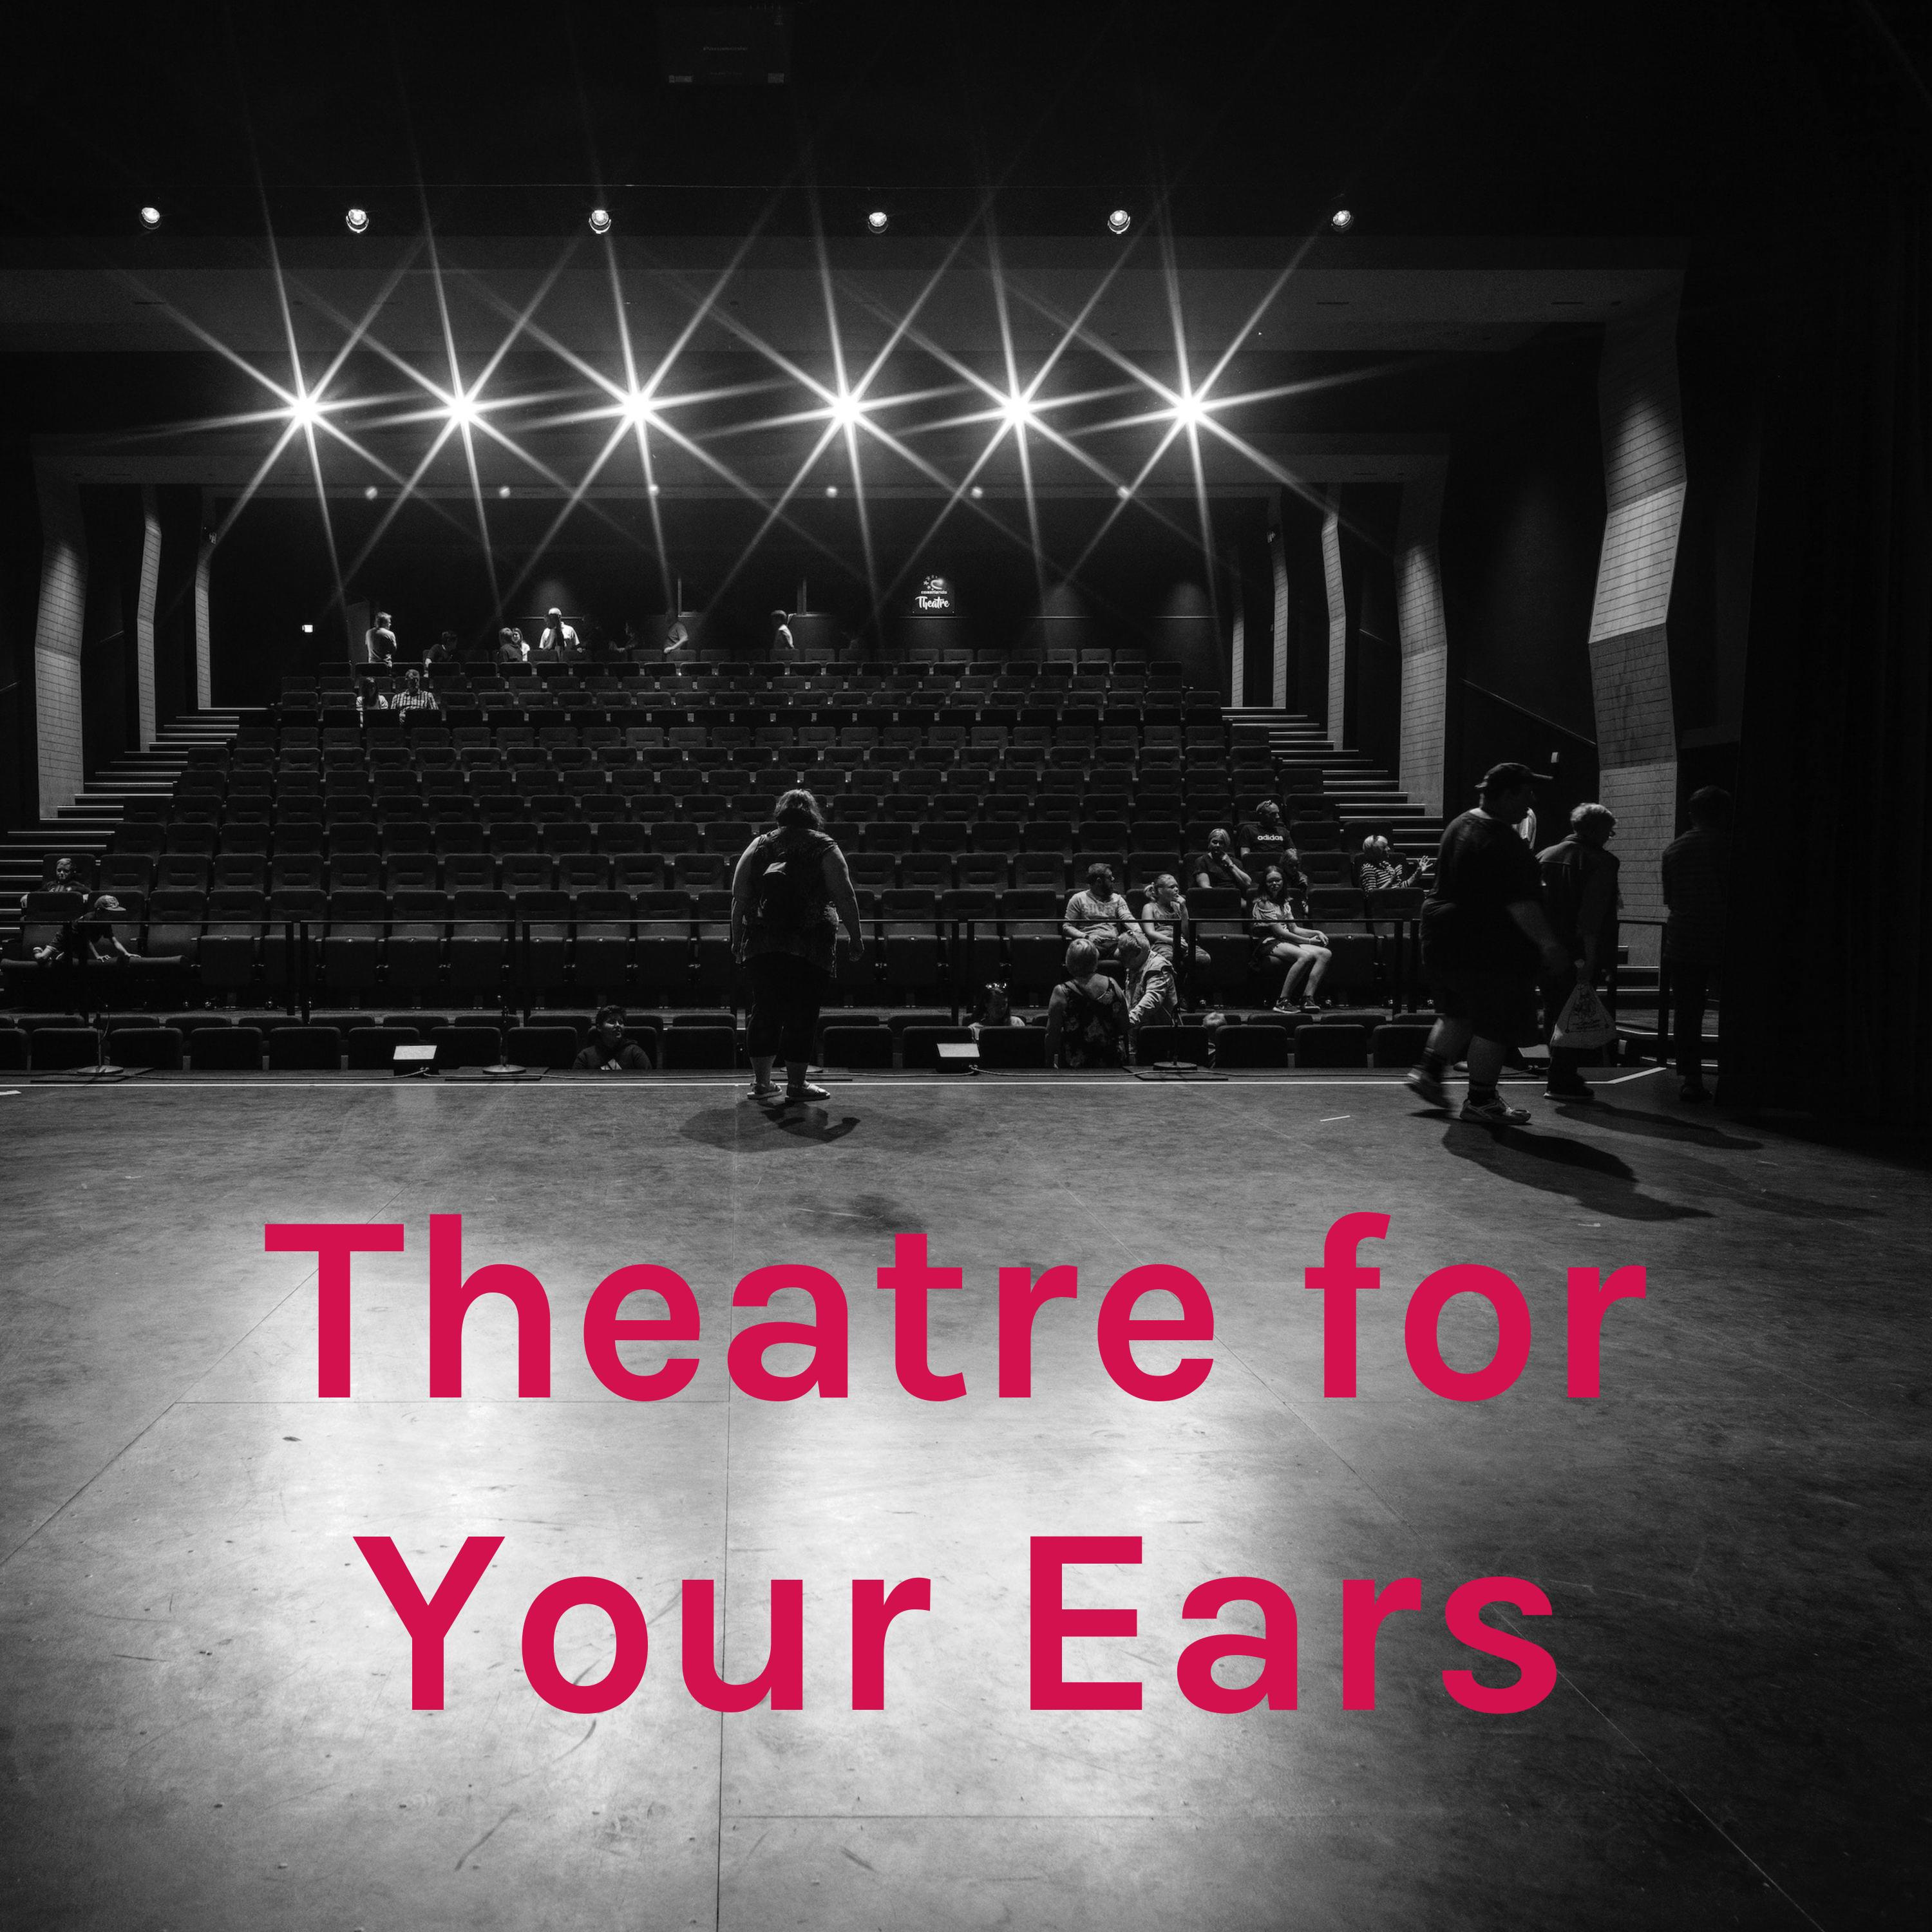 Theatre for Your Ears